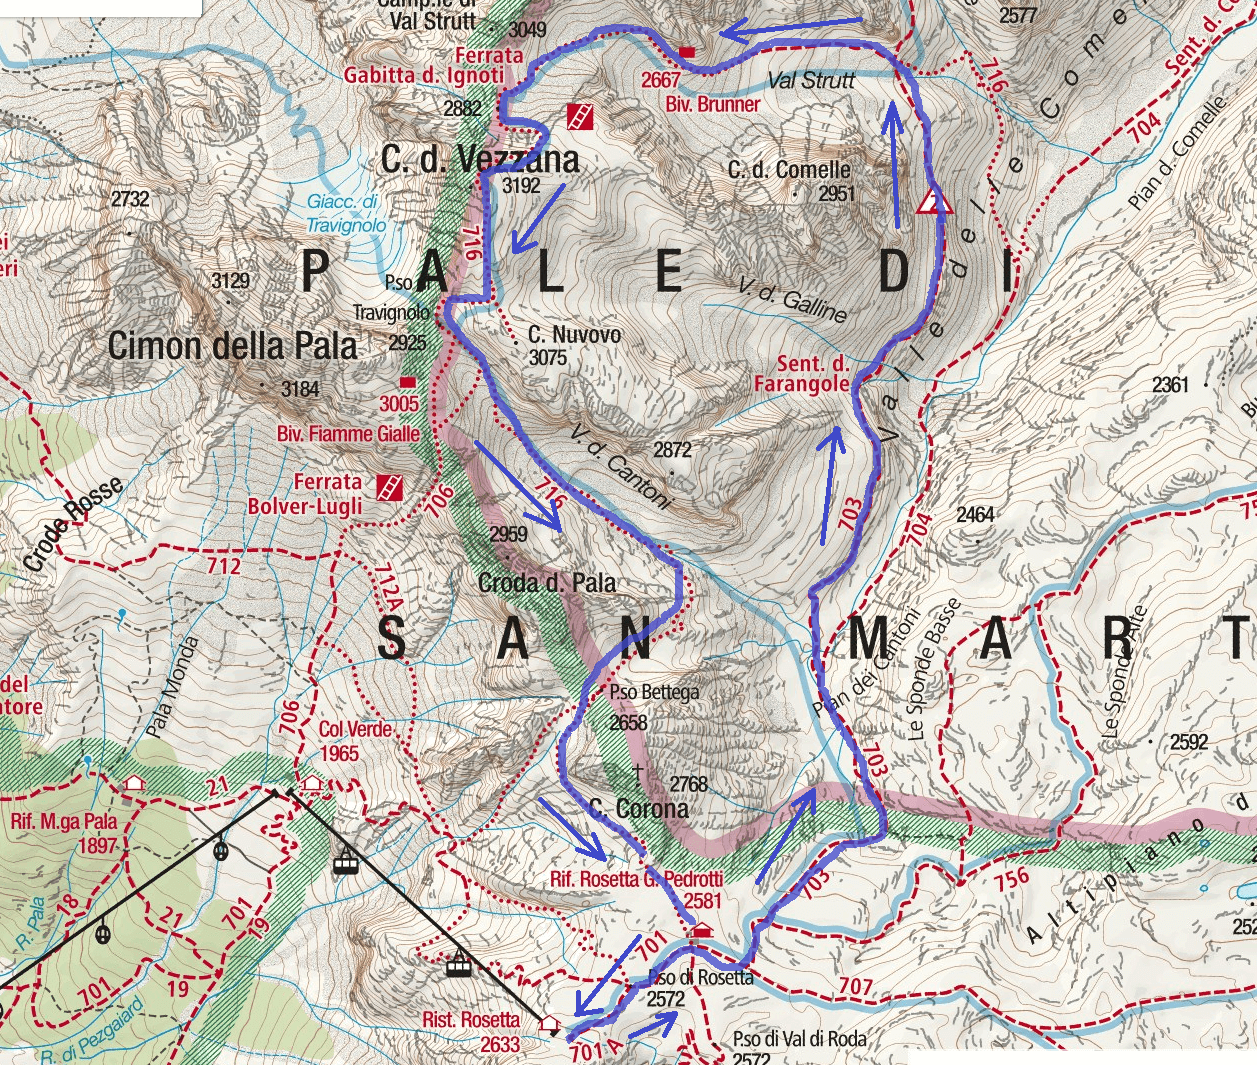 Gabitta d'Ignoti Ferrata Map Itinerary